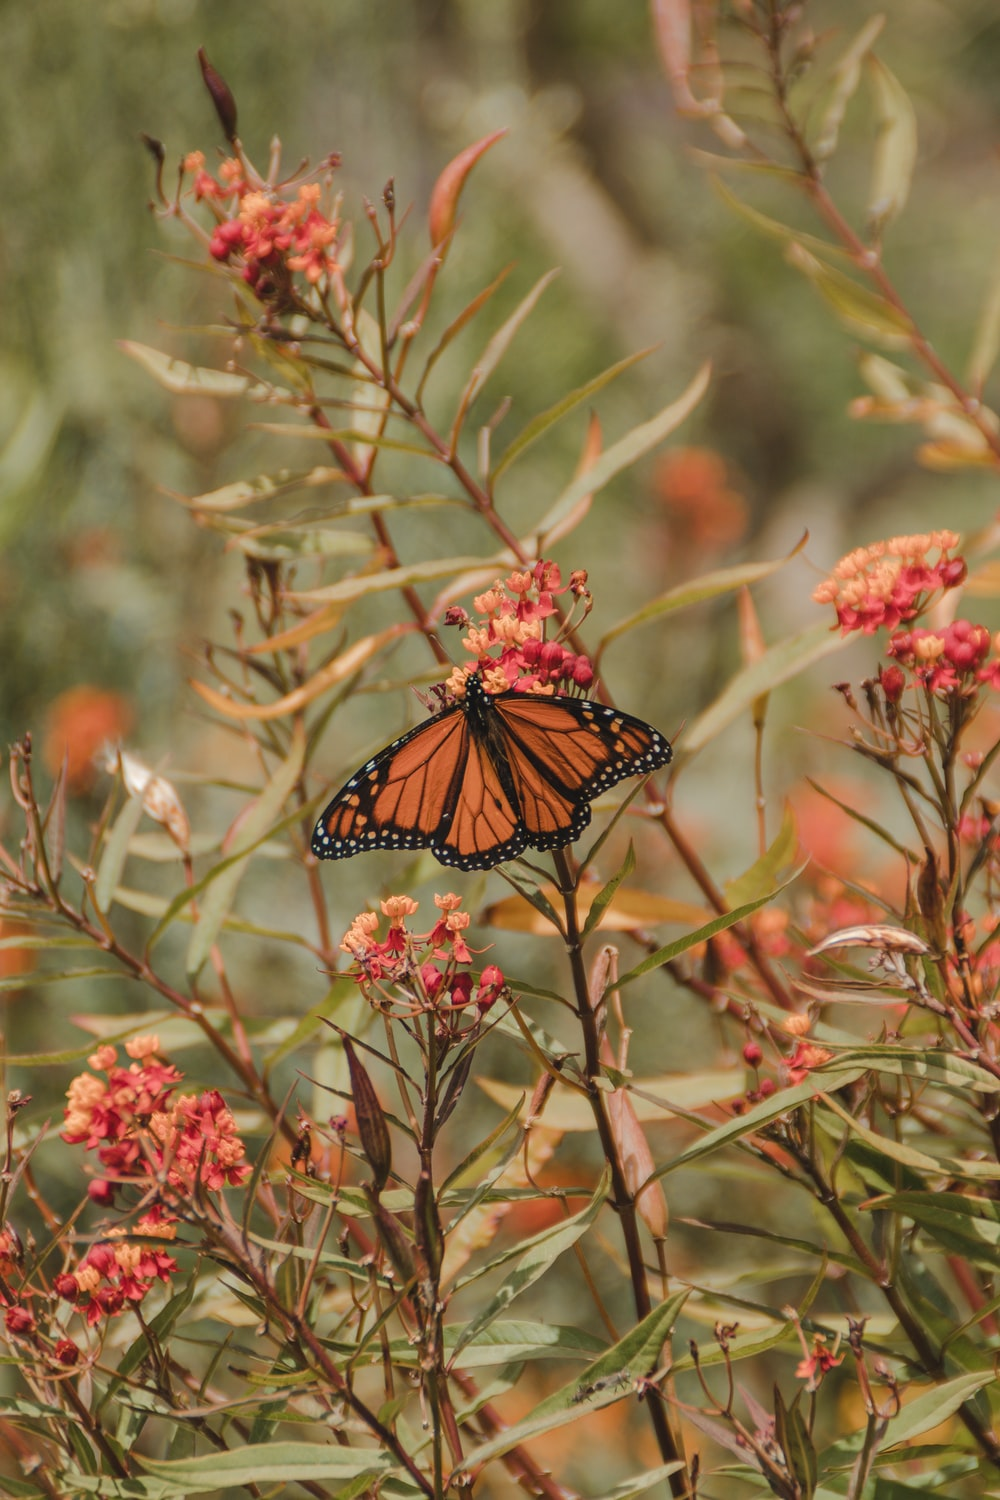 monarch butterfly perched on pink flower in close up photography during daytime